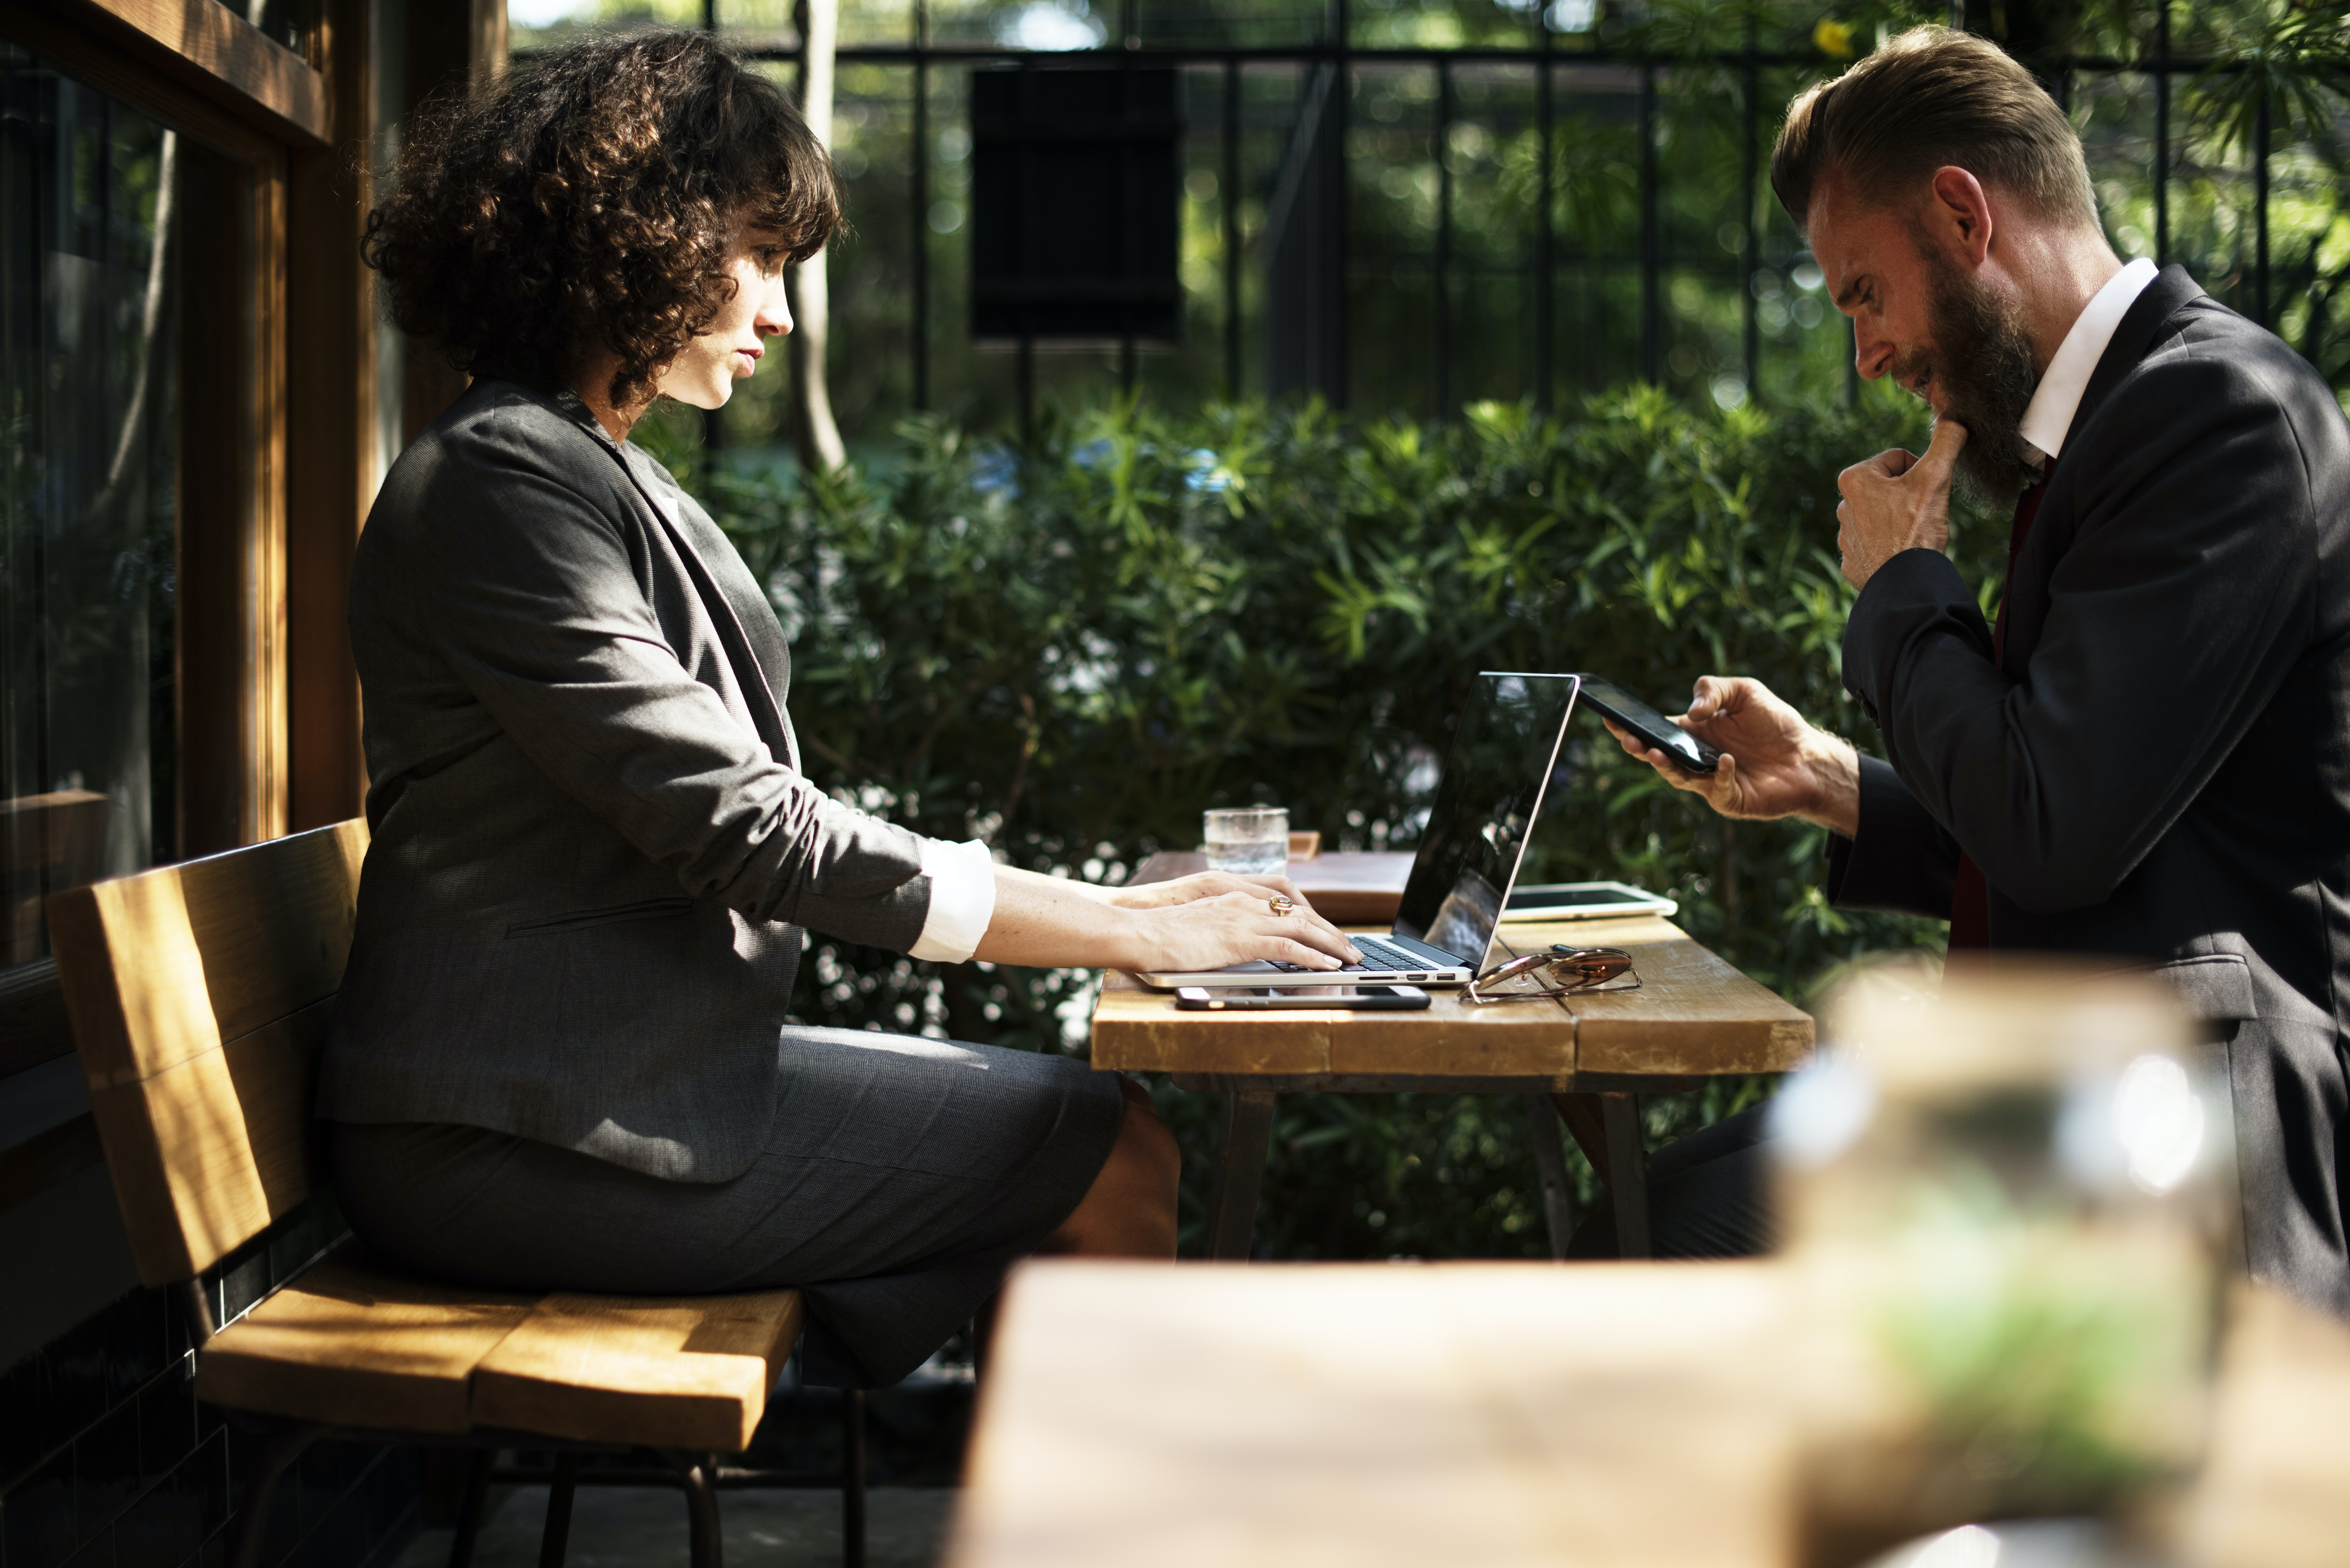 man and woman facing each other on dining table while operating laptop and smartphone